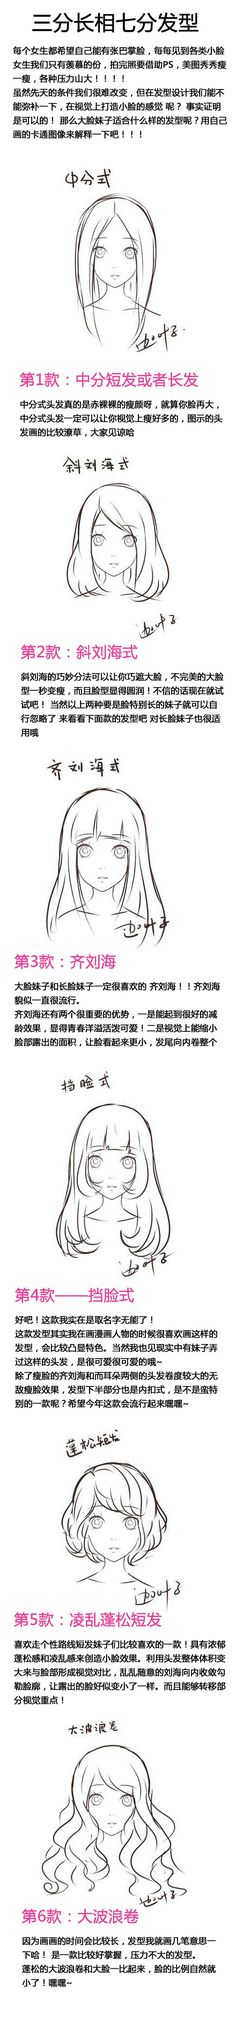 Tutorial on the Basics of Drawing Anime Hair. Basic Drawing, Drawing Lessons, Drawing Skills, Manga Drawing, Drawing Tips, Drawing Reference, Drawing Tutorials, Drawing Techniques, Art Tutorials